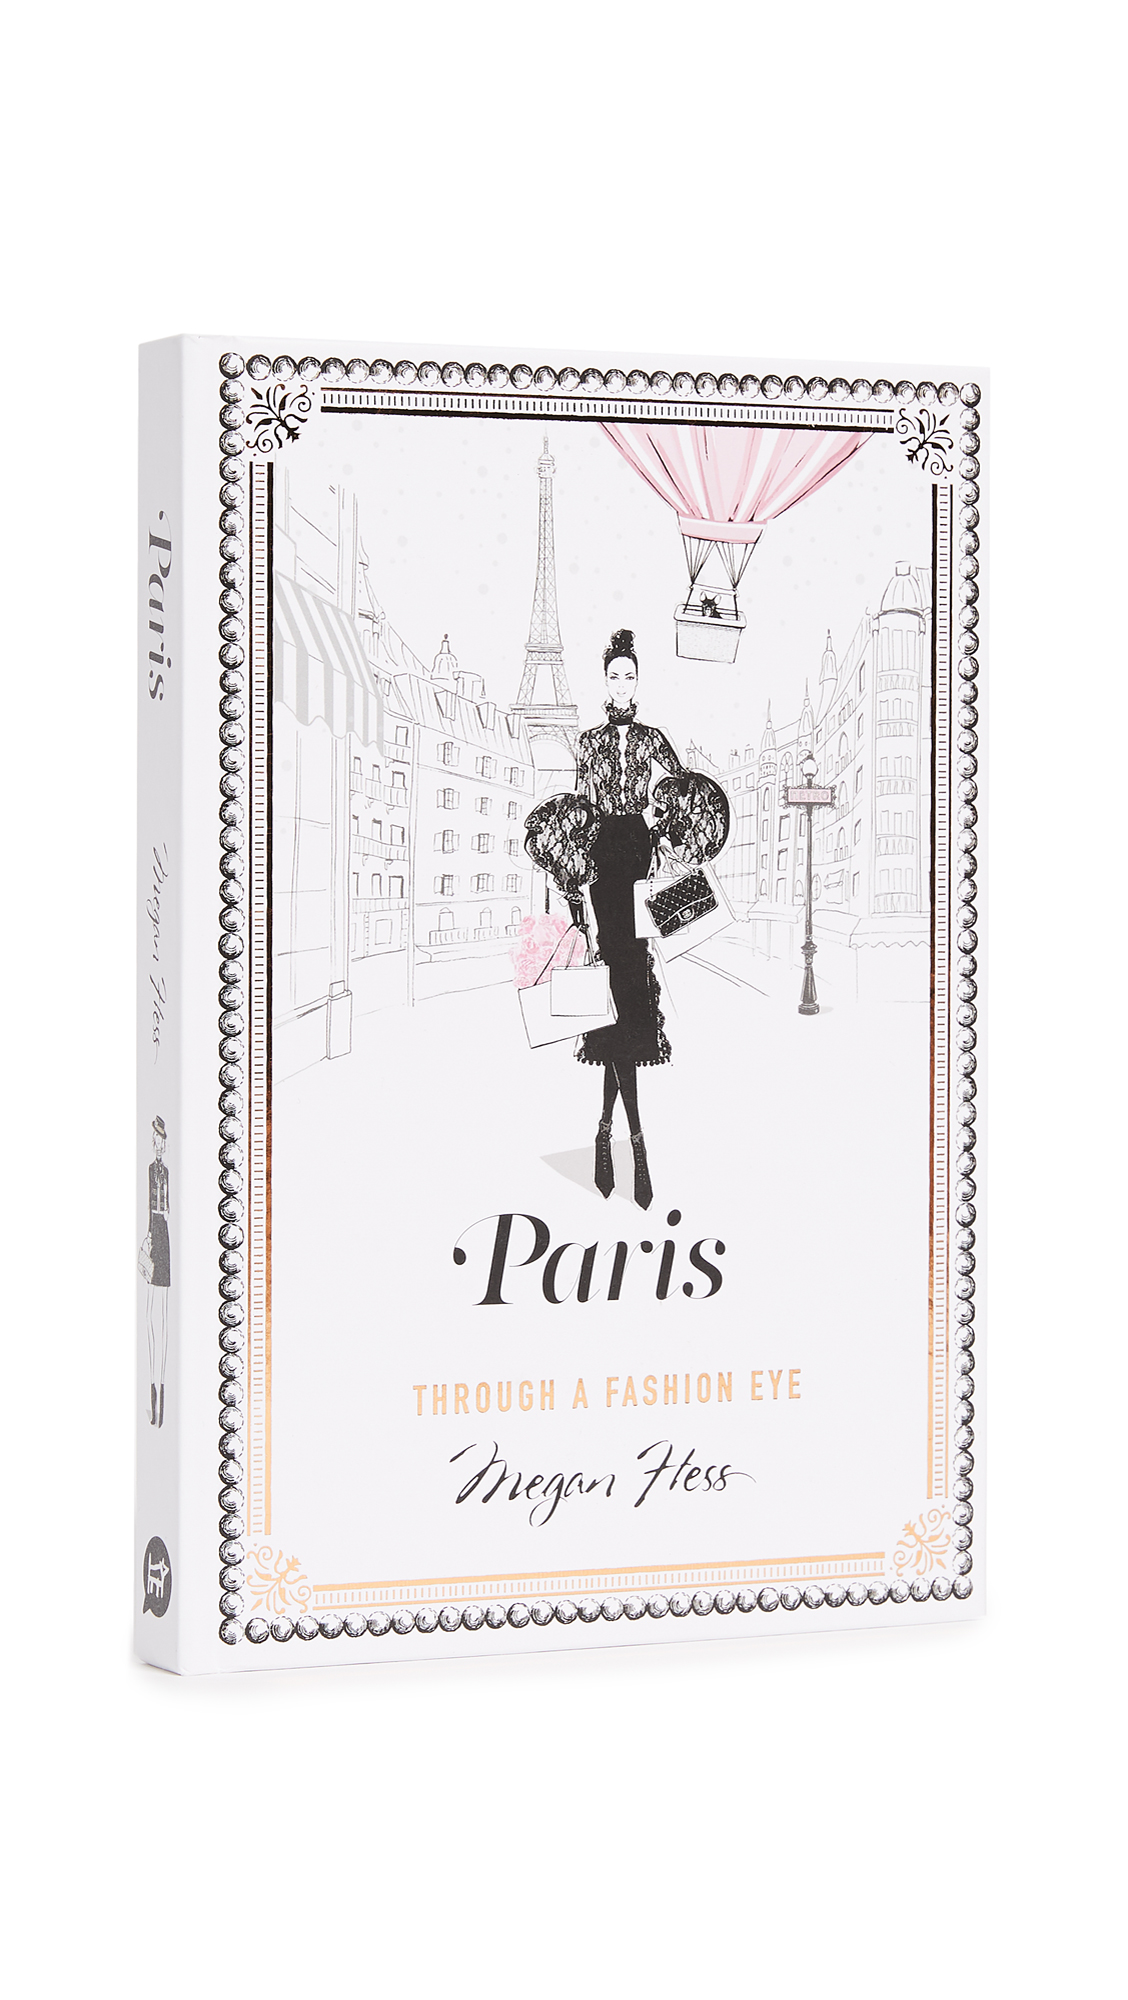 Paris is an illustrated guide to one of the world's best-loved fashion cities by one of the world's most successful fashion illustrators. In the second of her series of books on classic fashion destinations, Megan Hess takes you on a stylish adventure through the French capital, showing you the best places for a fashionista to eat, sleep, shop and play-all illustrated in her inimitable, elegant style. Imported, China. By Megan Hess. Hardcover. 208 pages. Imprint: Hardie Grant. ISBN: 978-1743792476 Measurements Width: 1in / 2.25cm Height: 9in / 23cm Length: 6in / 15.5cm